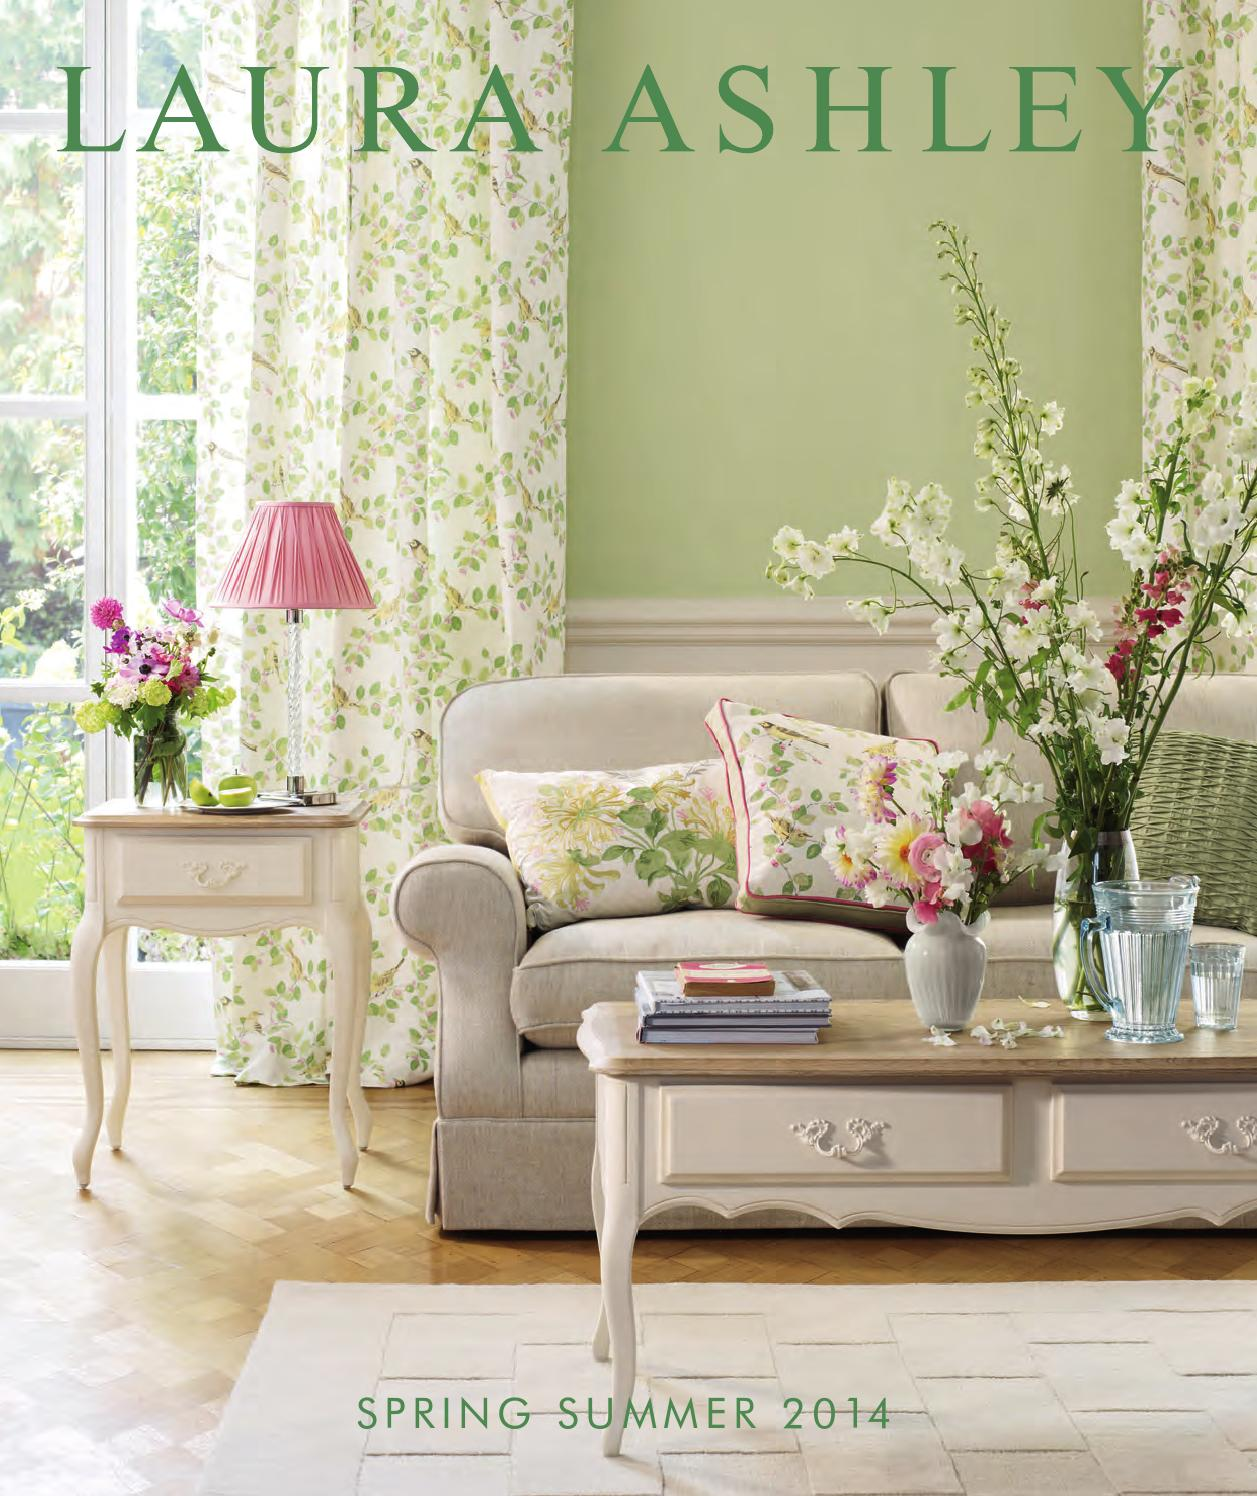 laura ashley - photo #6